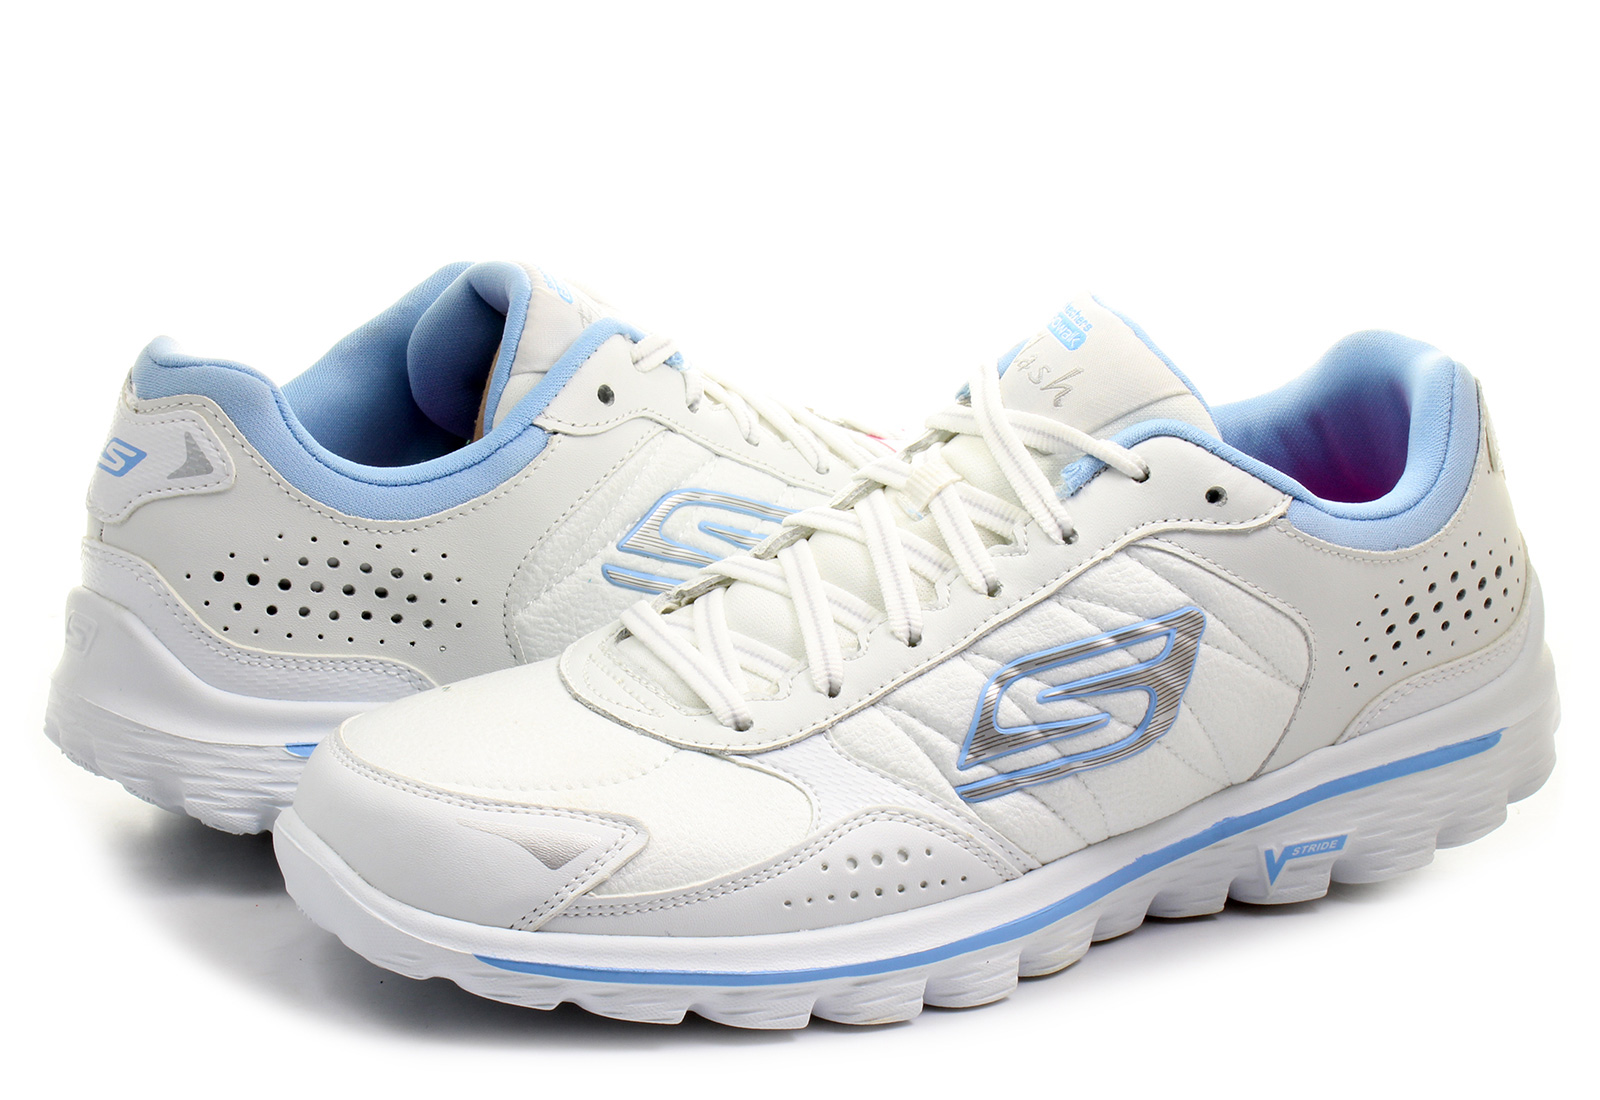 425c1bafa9cd Skechers Shoes - Go Walk 2 - Flash Lt - 13973-WLBL - Online shop for ...